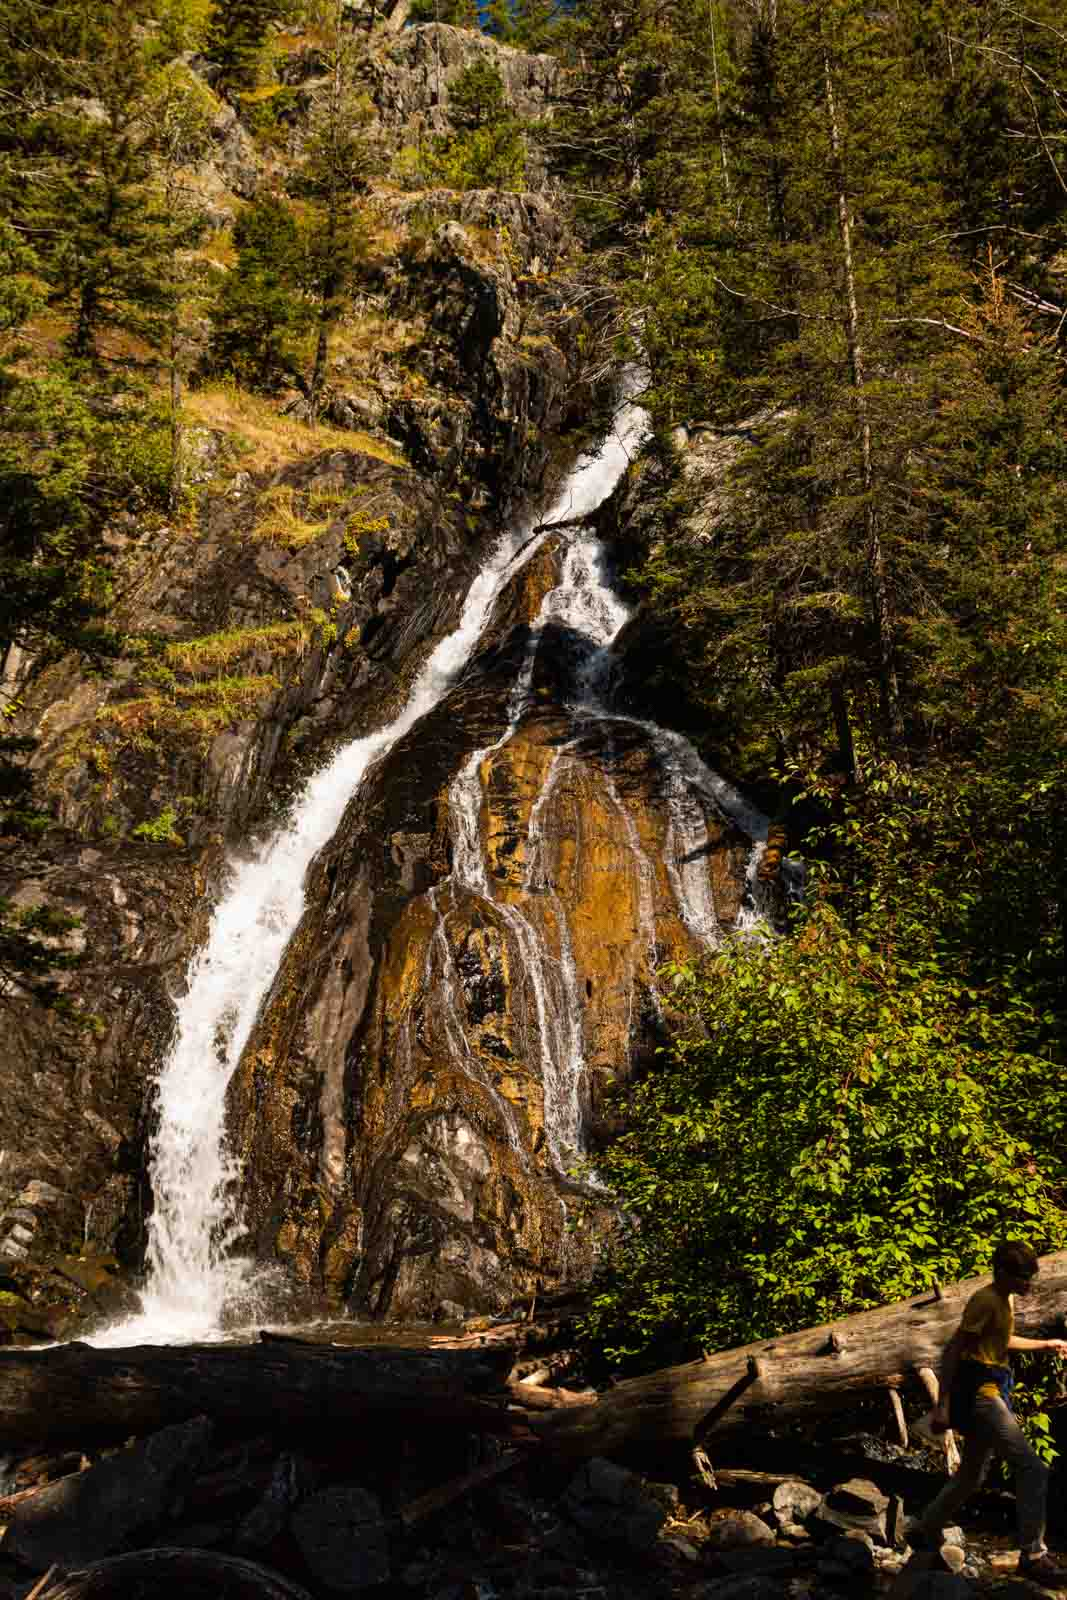 Don't forget Pine Creek Falls on your Montana road trip!